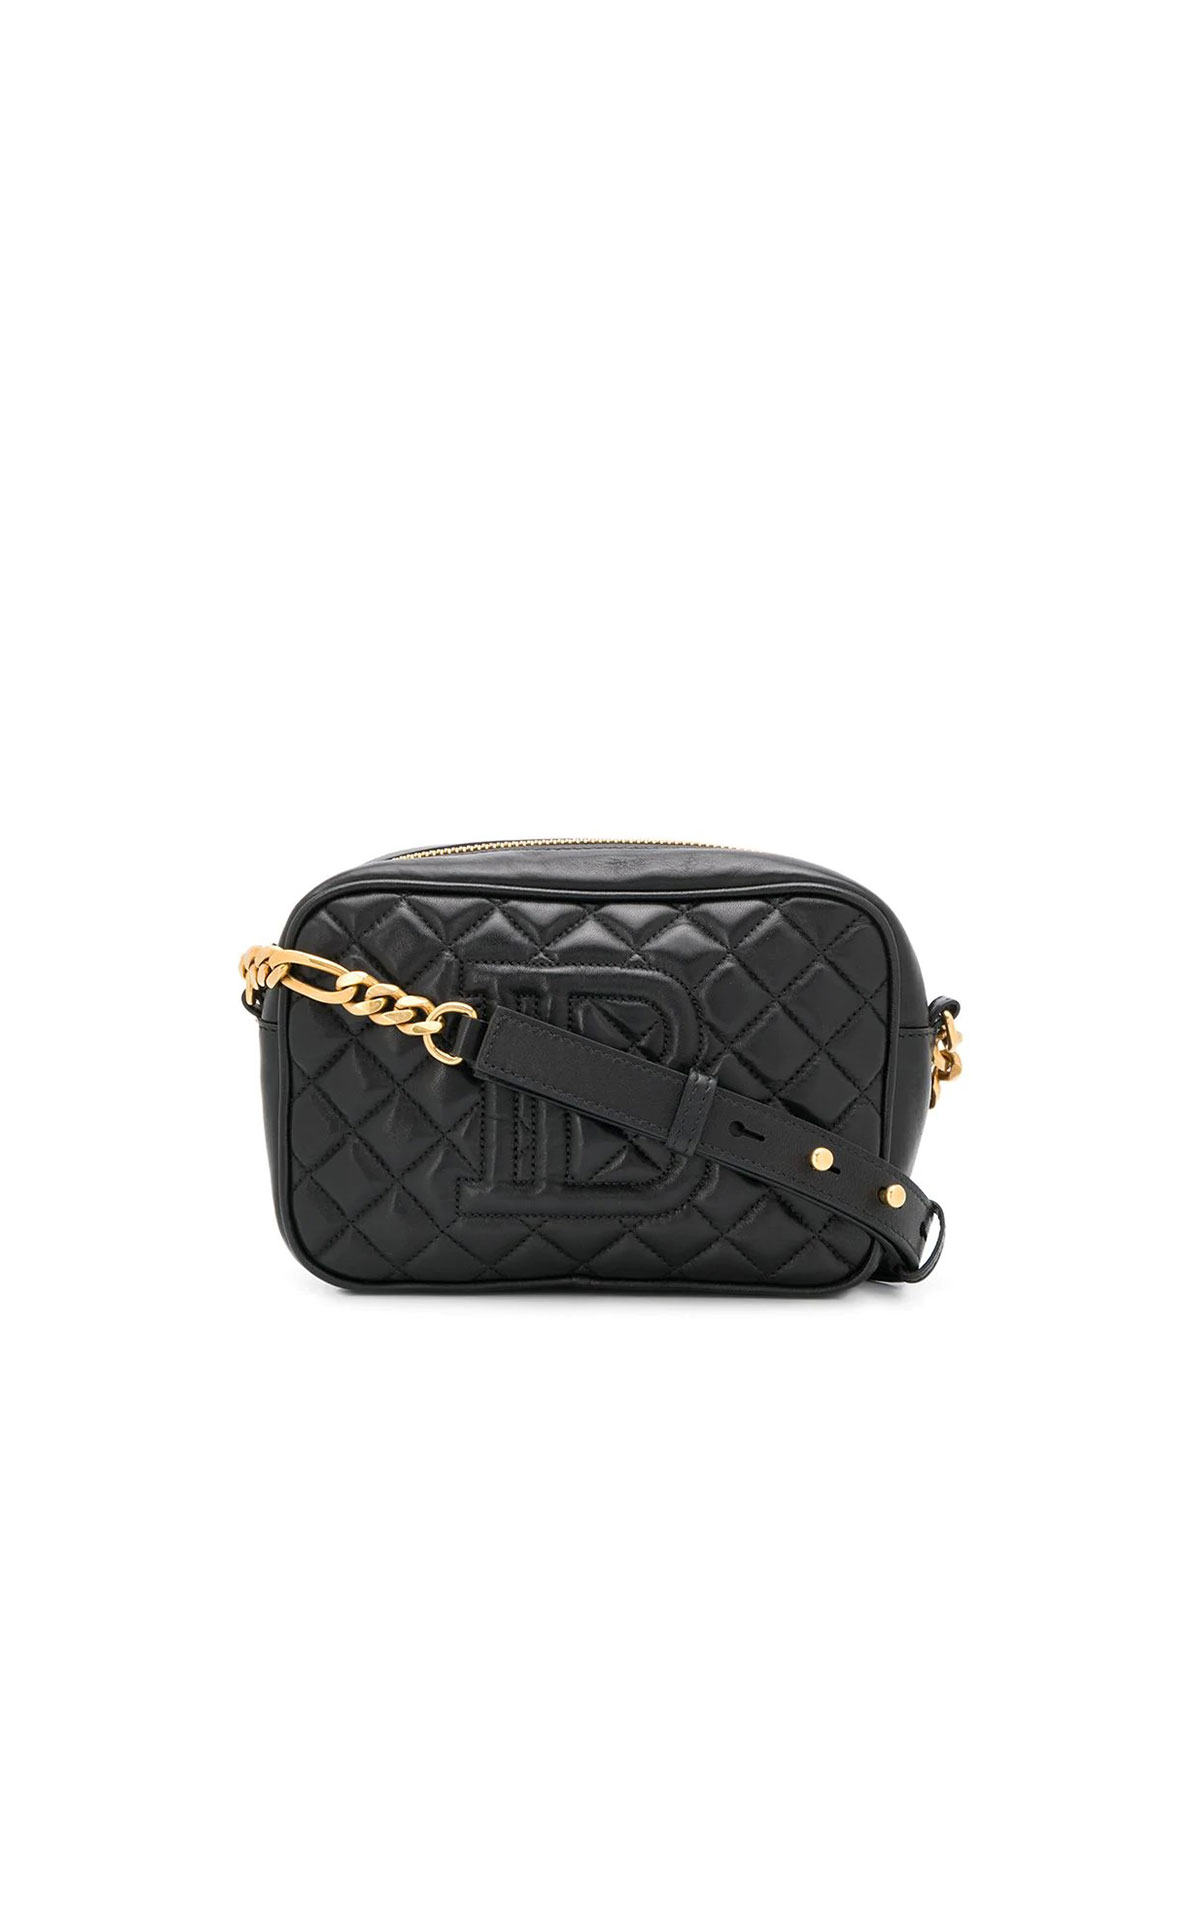 Balmain B Camera quilted crossbody bag from Bicester Village